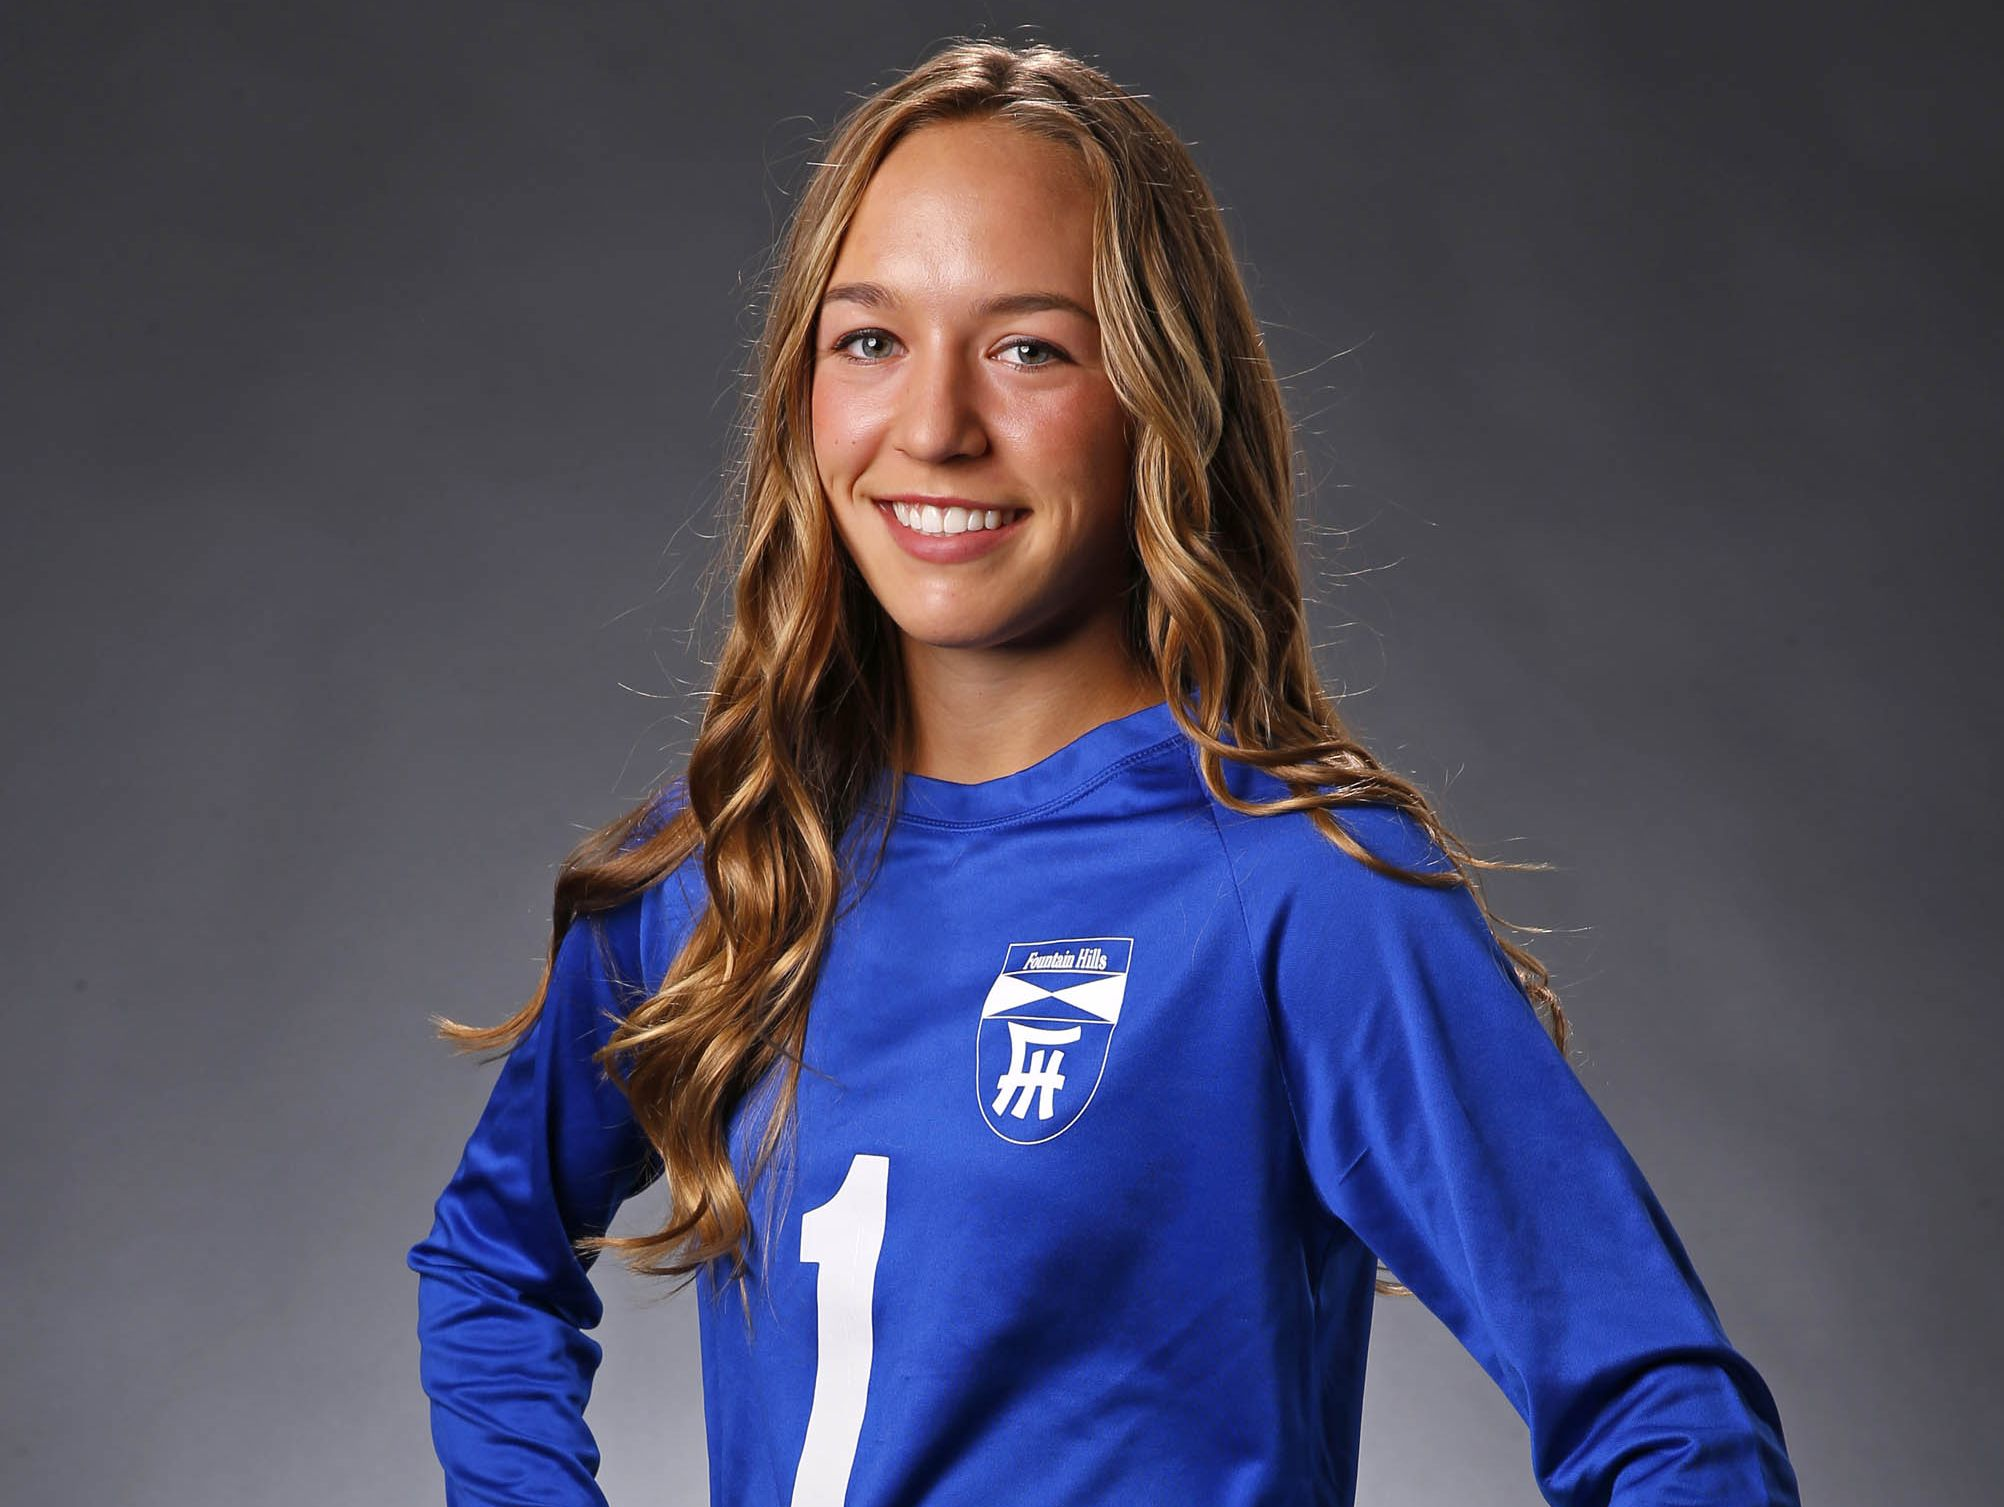 Erika Yost, Fountain Hills junior soccer player, is the azcentral sports' Arizona Sports Awards Athlete of the Month runner-up, presented by La-Z-Boy Furniture Galleries.